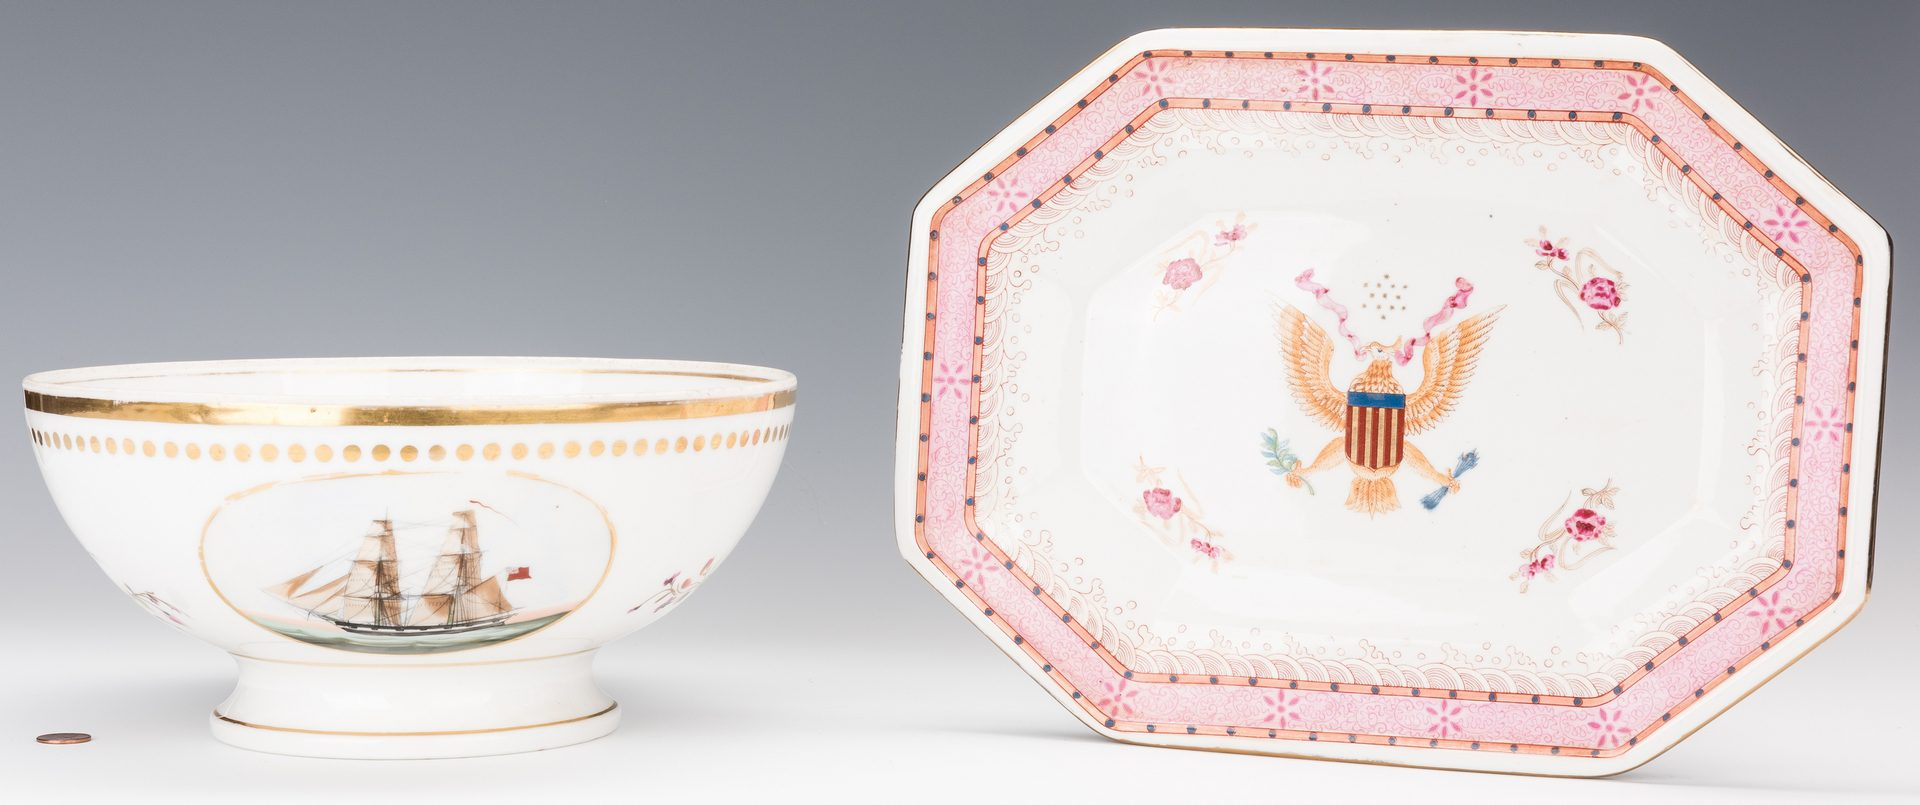 Lot 235: Ship Decorated Bowl & Armorial Platter, 2 pcs.